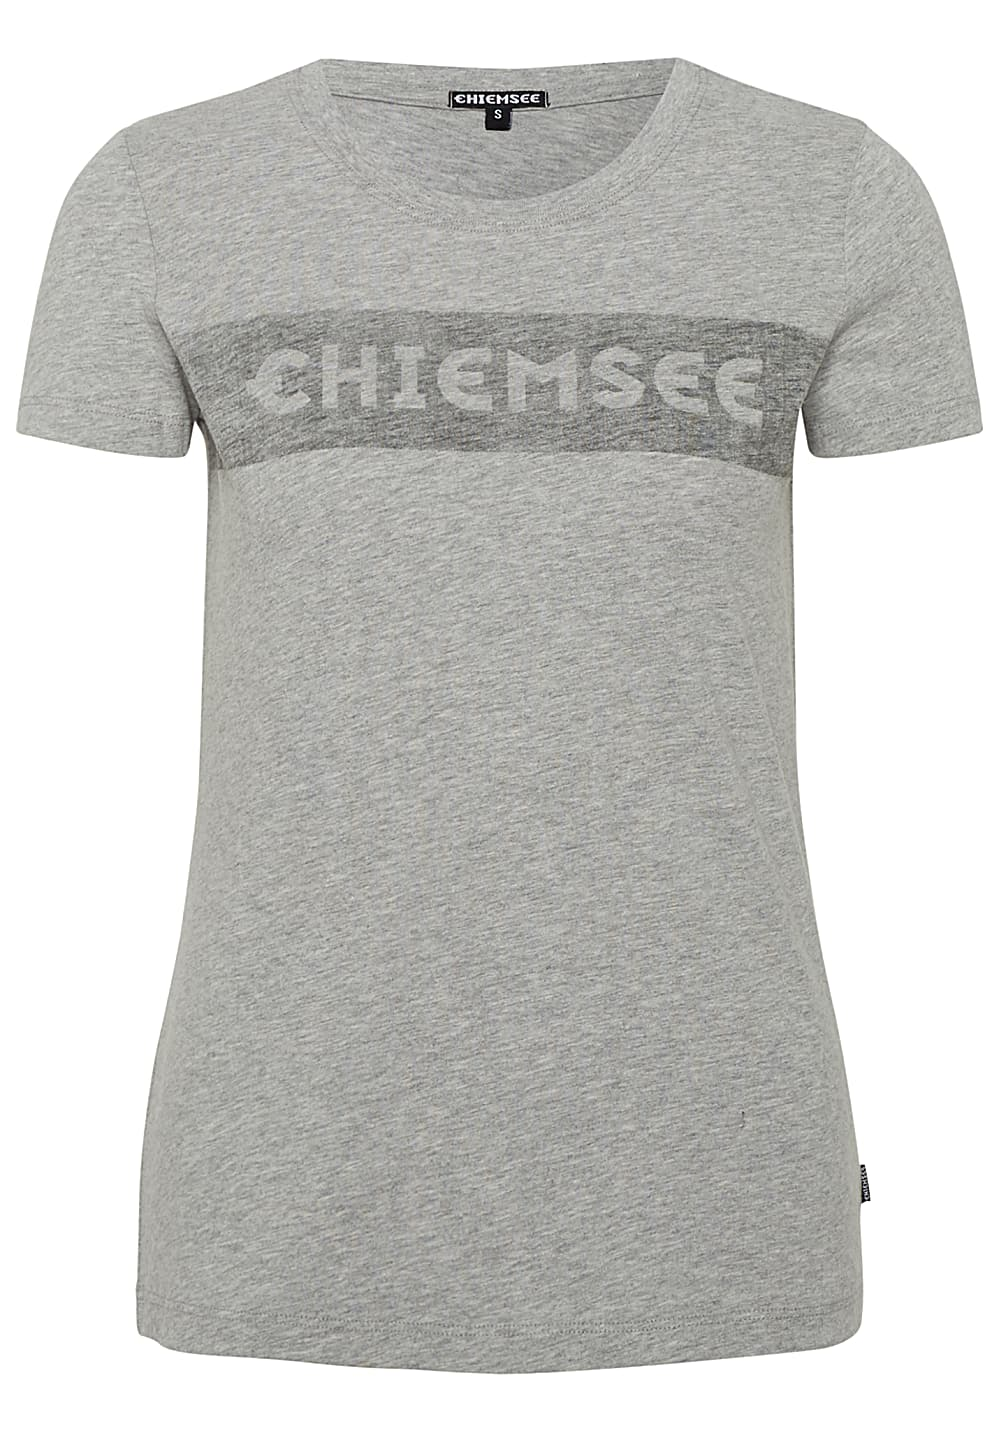 967e41a8302498 Chiemsee T-Shirt Frontdruck - T-Shirt for Women - Grey - Planet Sports